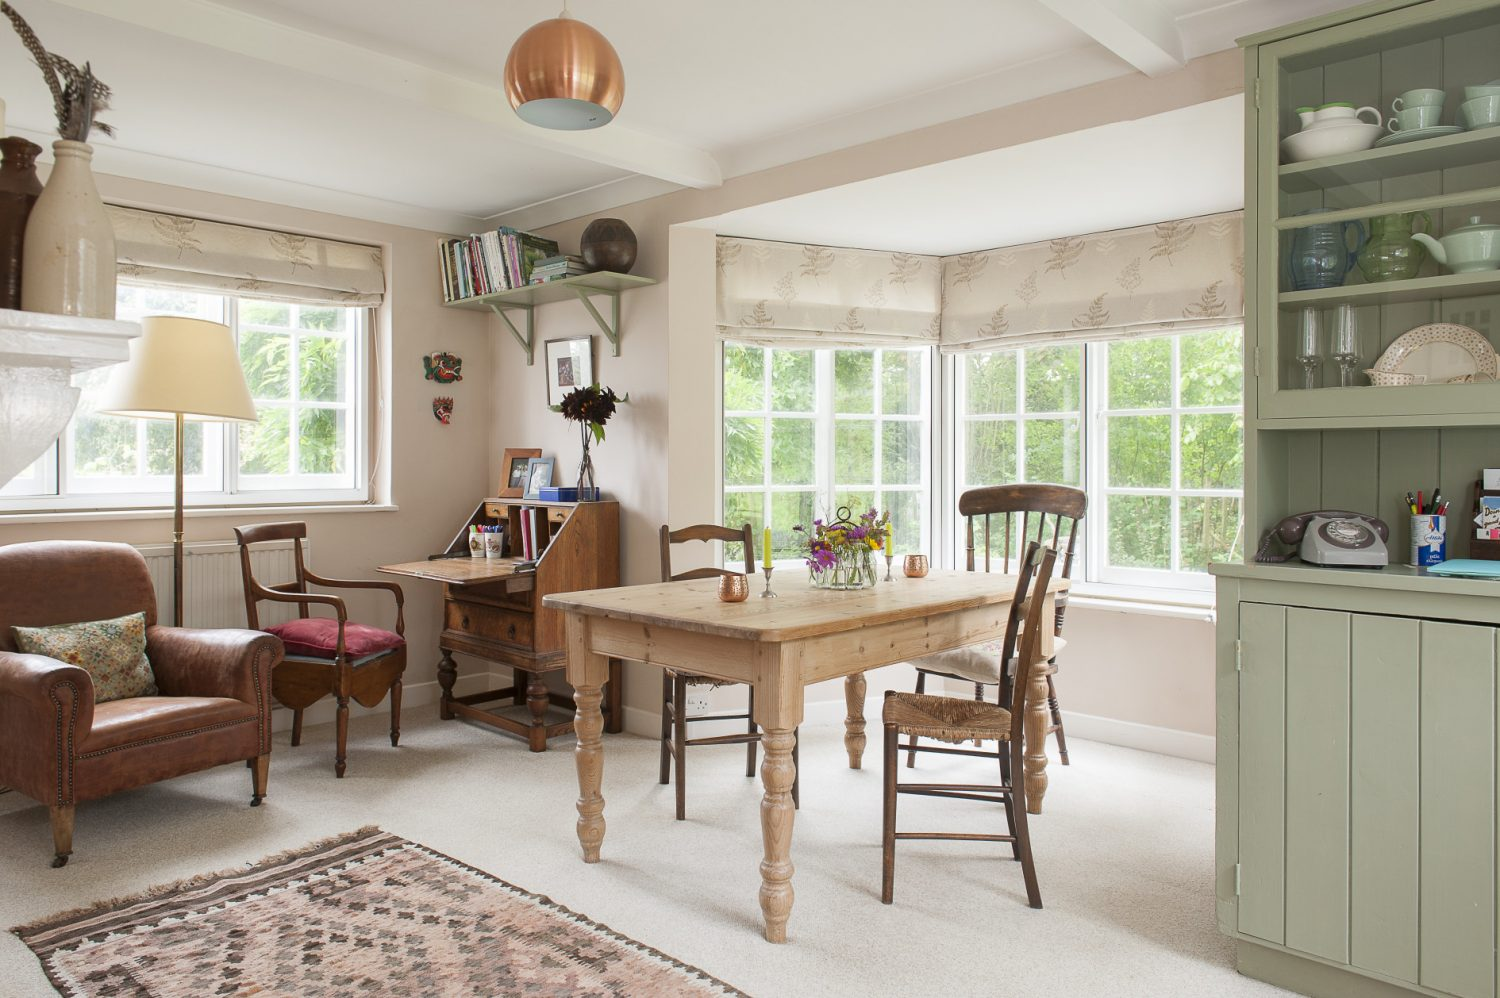 A rustic farmhouse table overlooking the kitchen garden is the perfect place to sit down and enjoy a meal made from home-grown vegetables